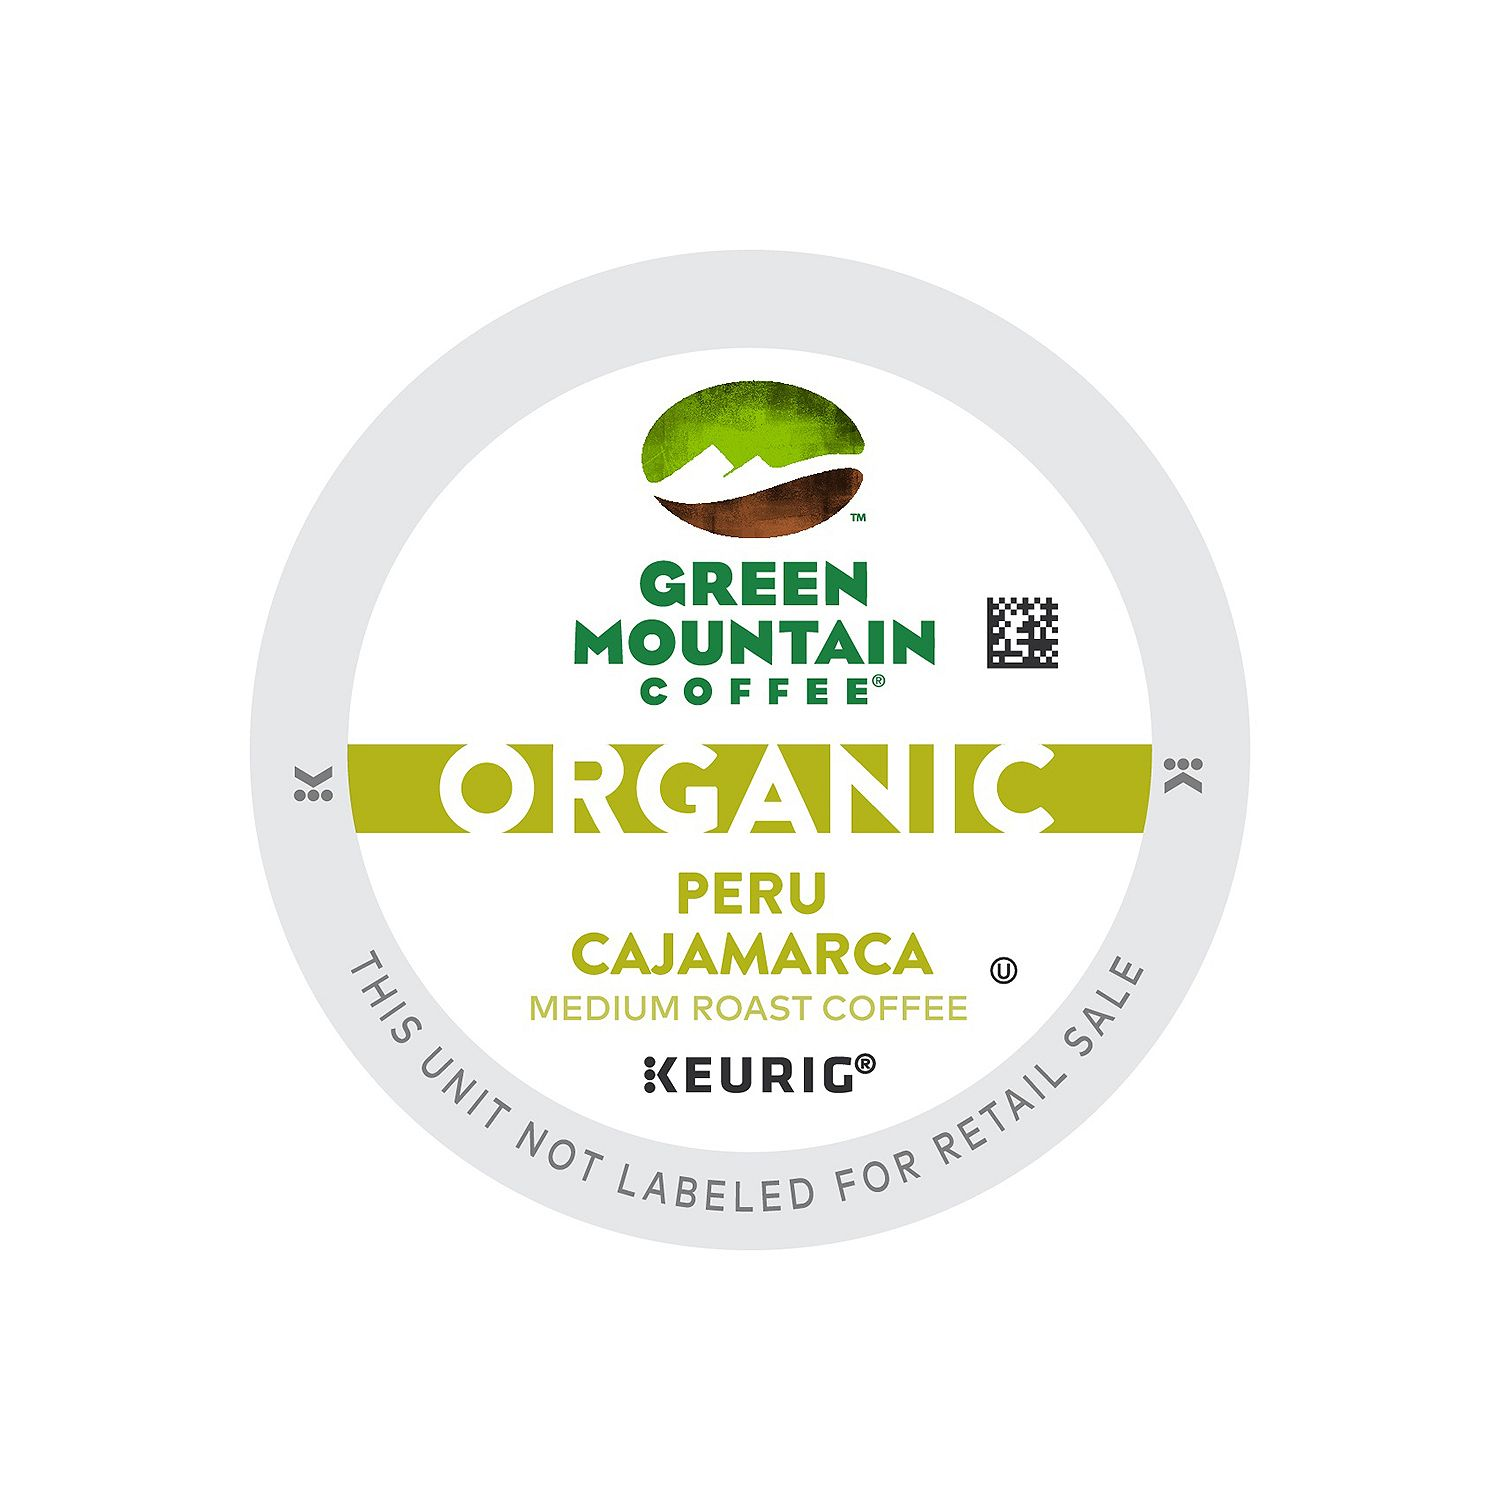 Green Mountain Coffee Organic Peru Cajamarca, K-Cup Portion Pack For Keurig Brewers (96 Count)